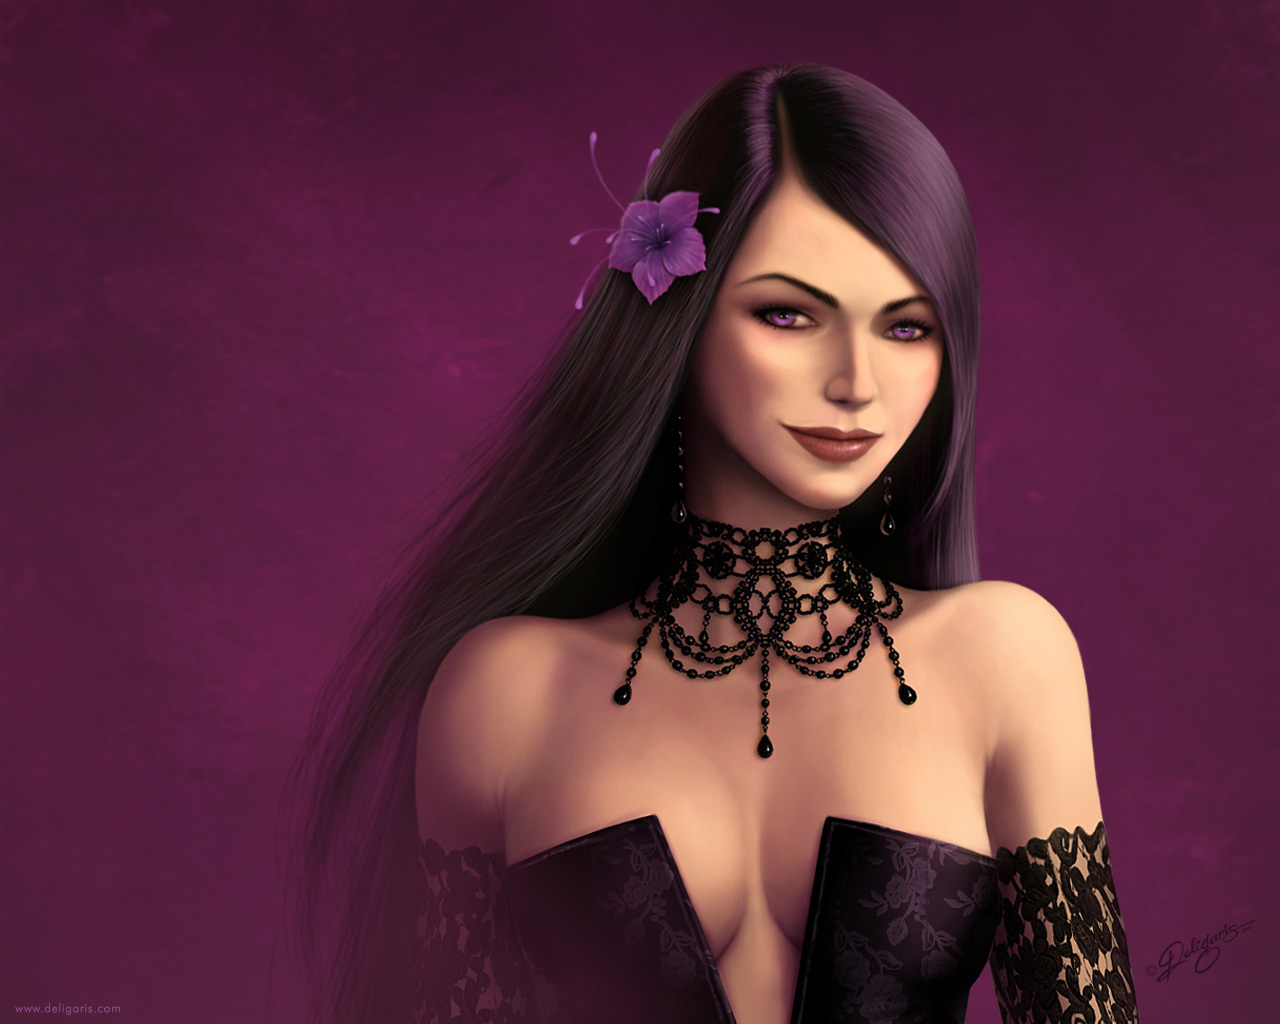 woman purple deviantart Gothic HD Wallpaper